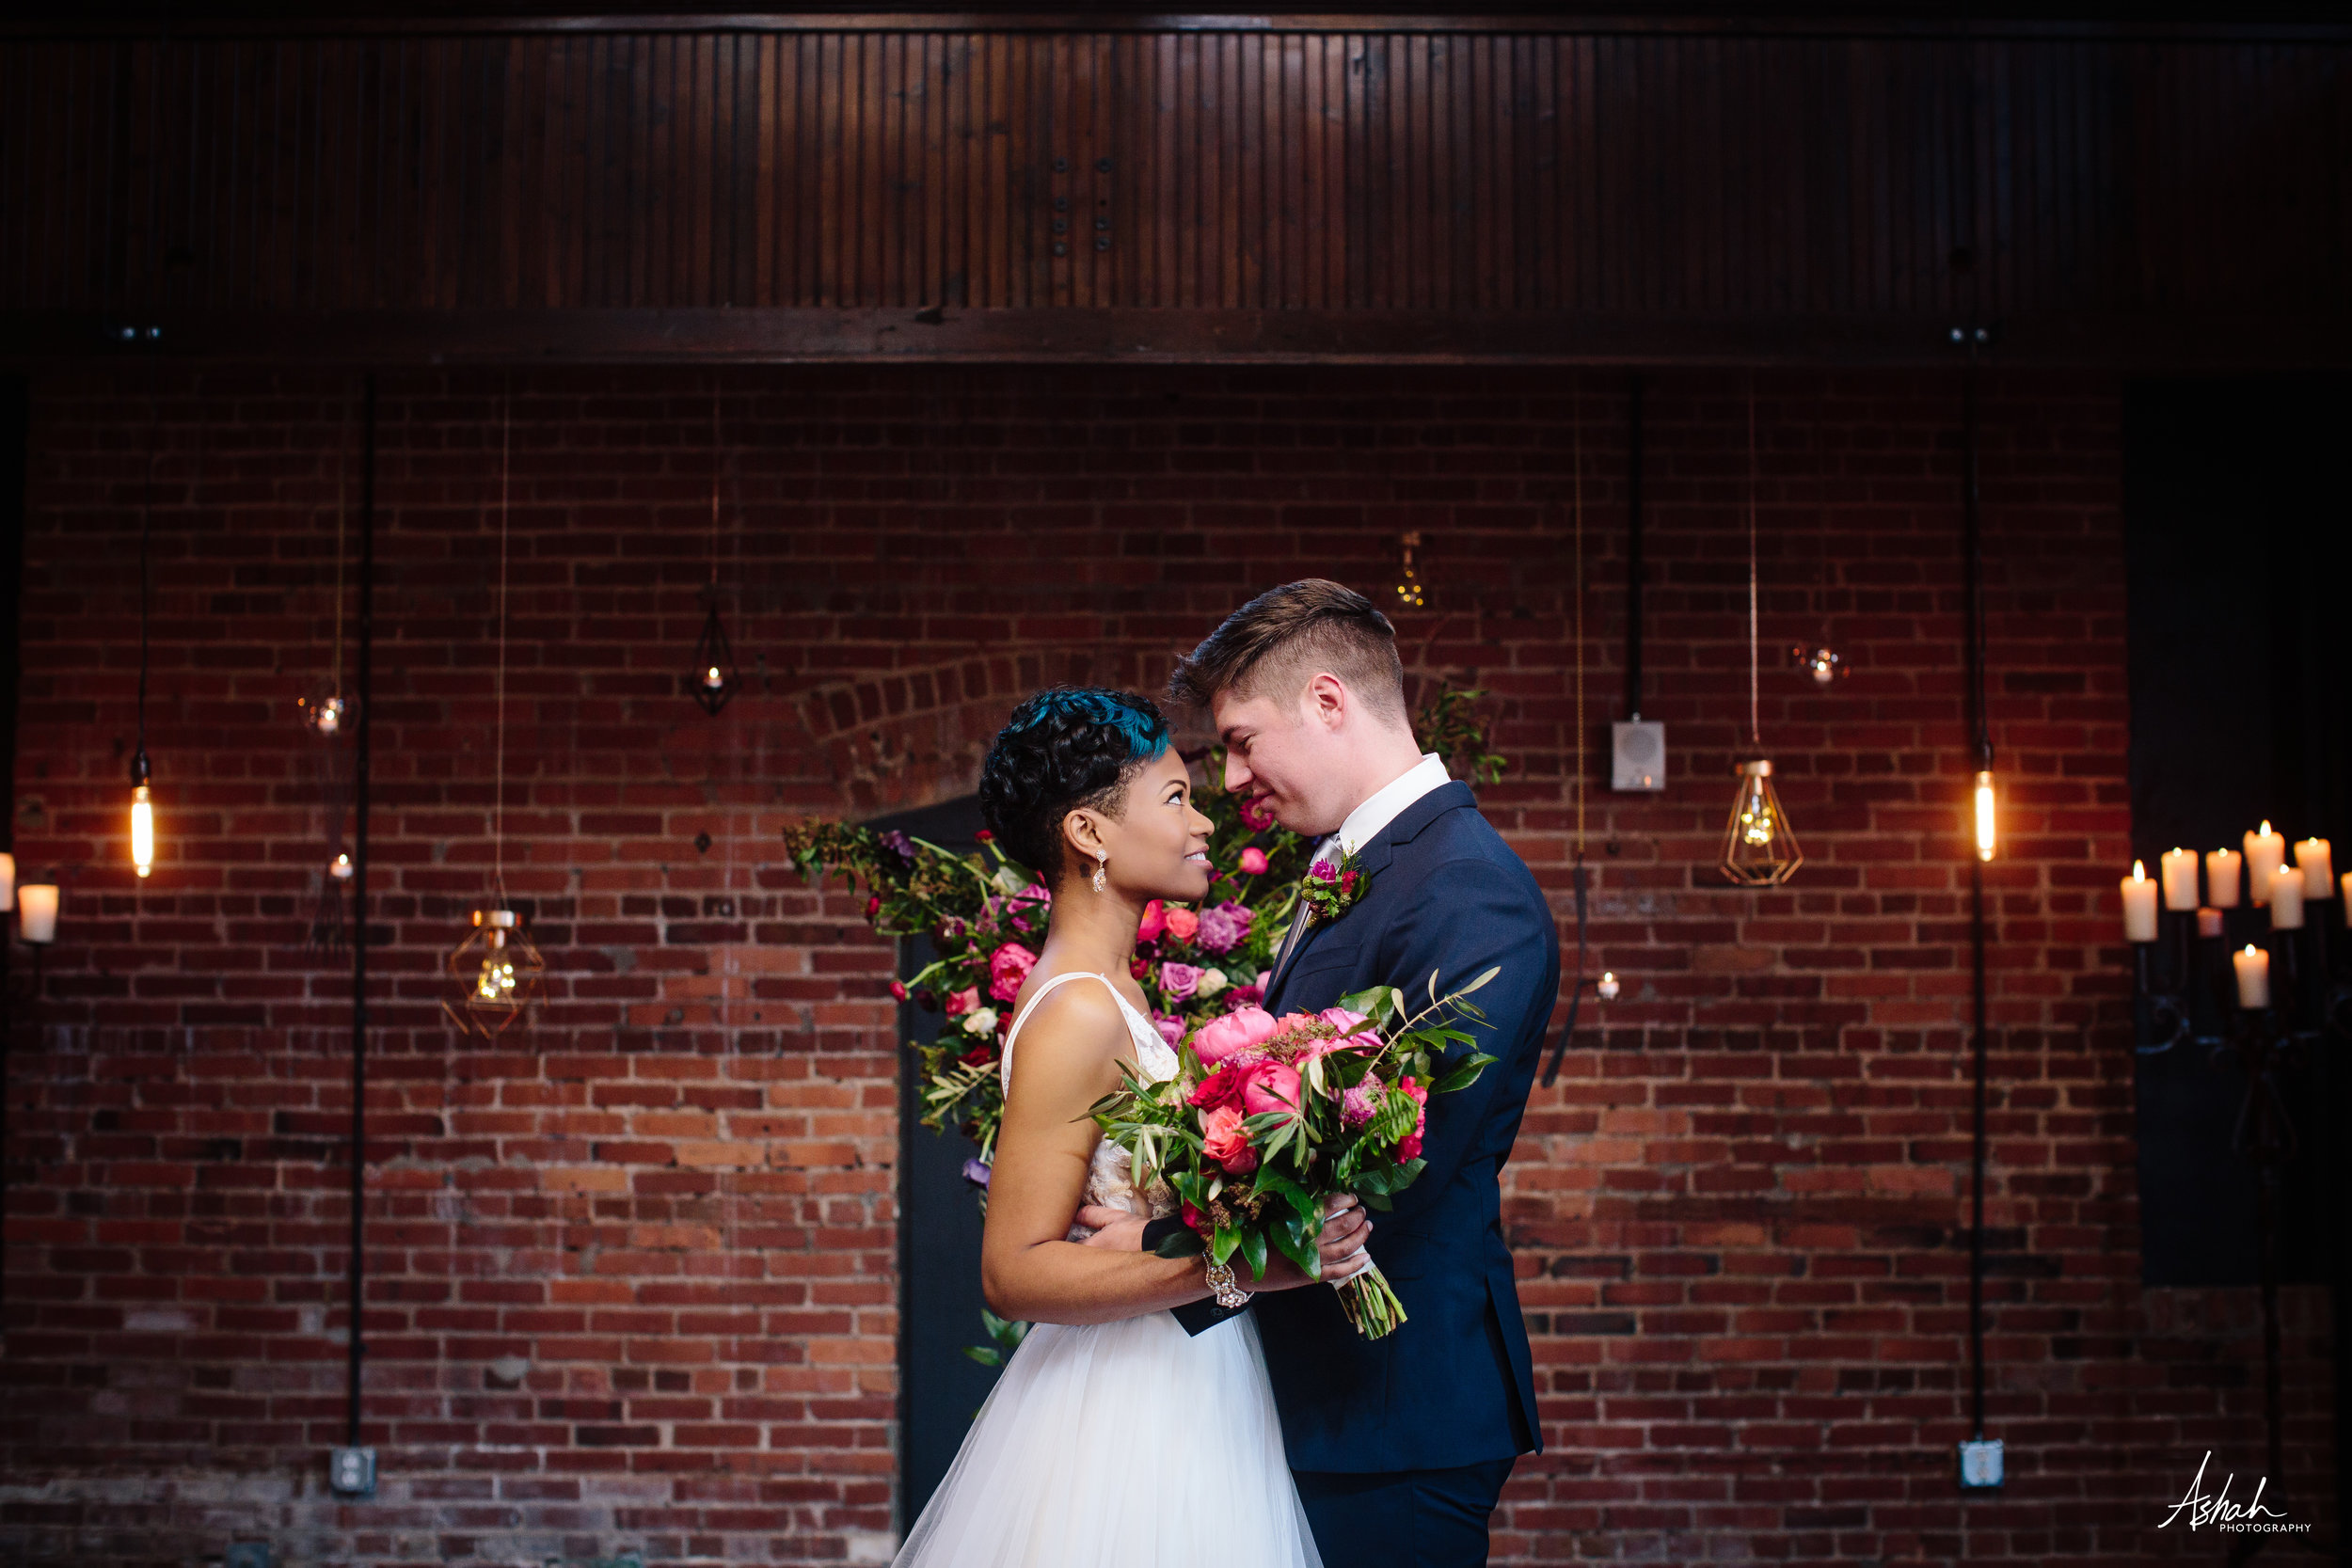 New City Weddings  | Photo:  Ashah Photography  | Flowers:  Southern Florals and Drapes